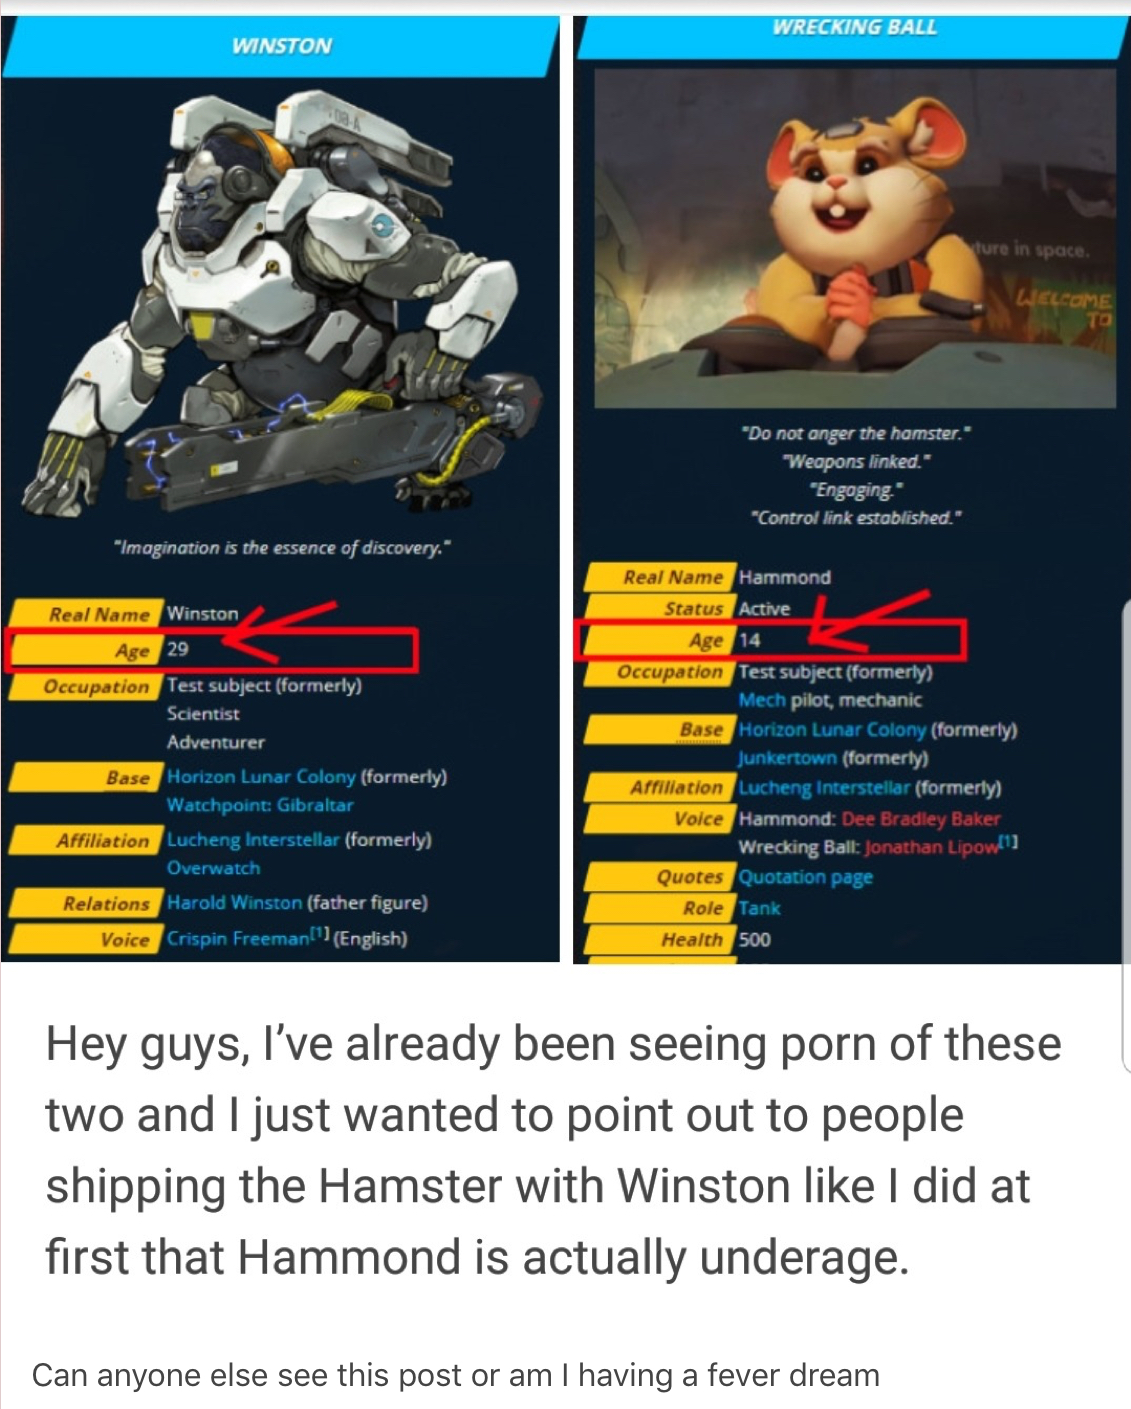 Overwatch dont draw hamsterxgorilla porn because the hamster might be underage is probably the single most surreal summation of the state of discourse